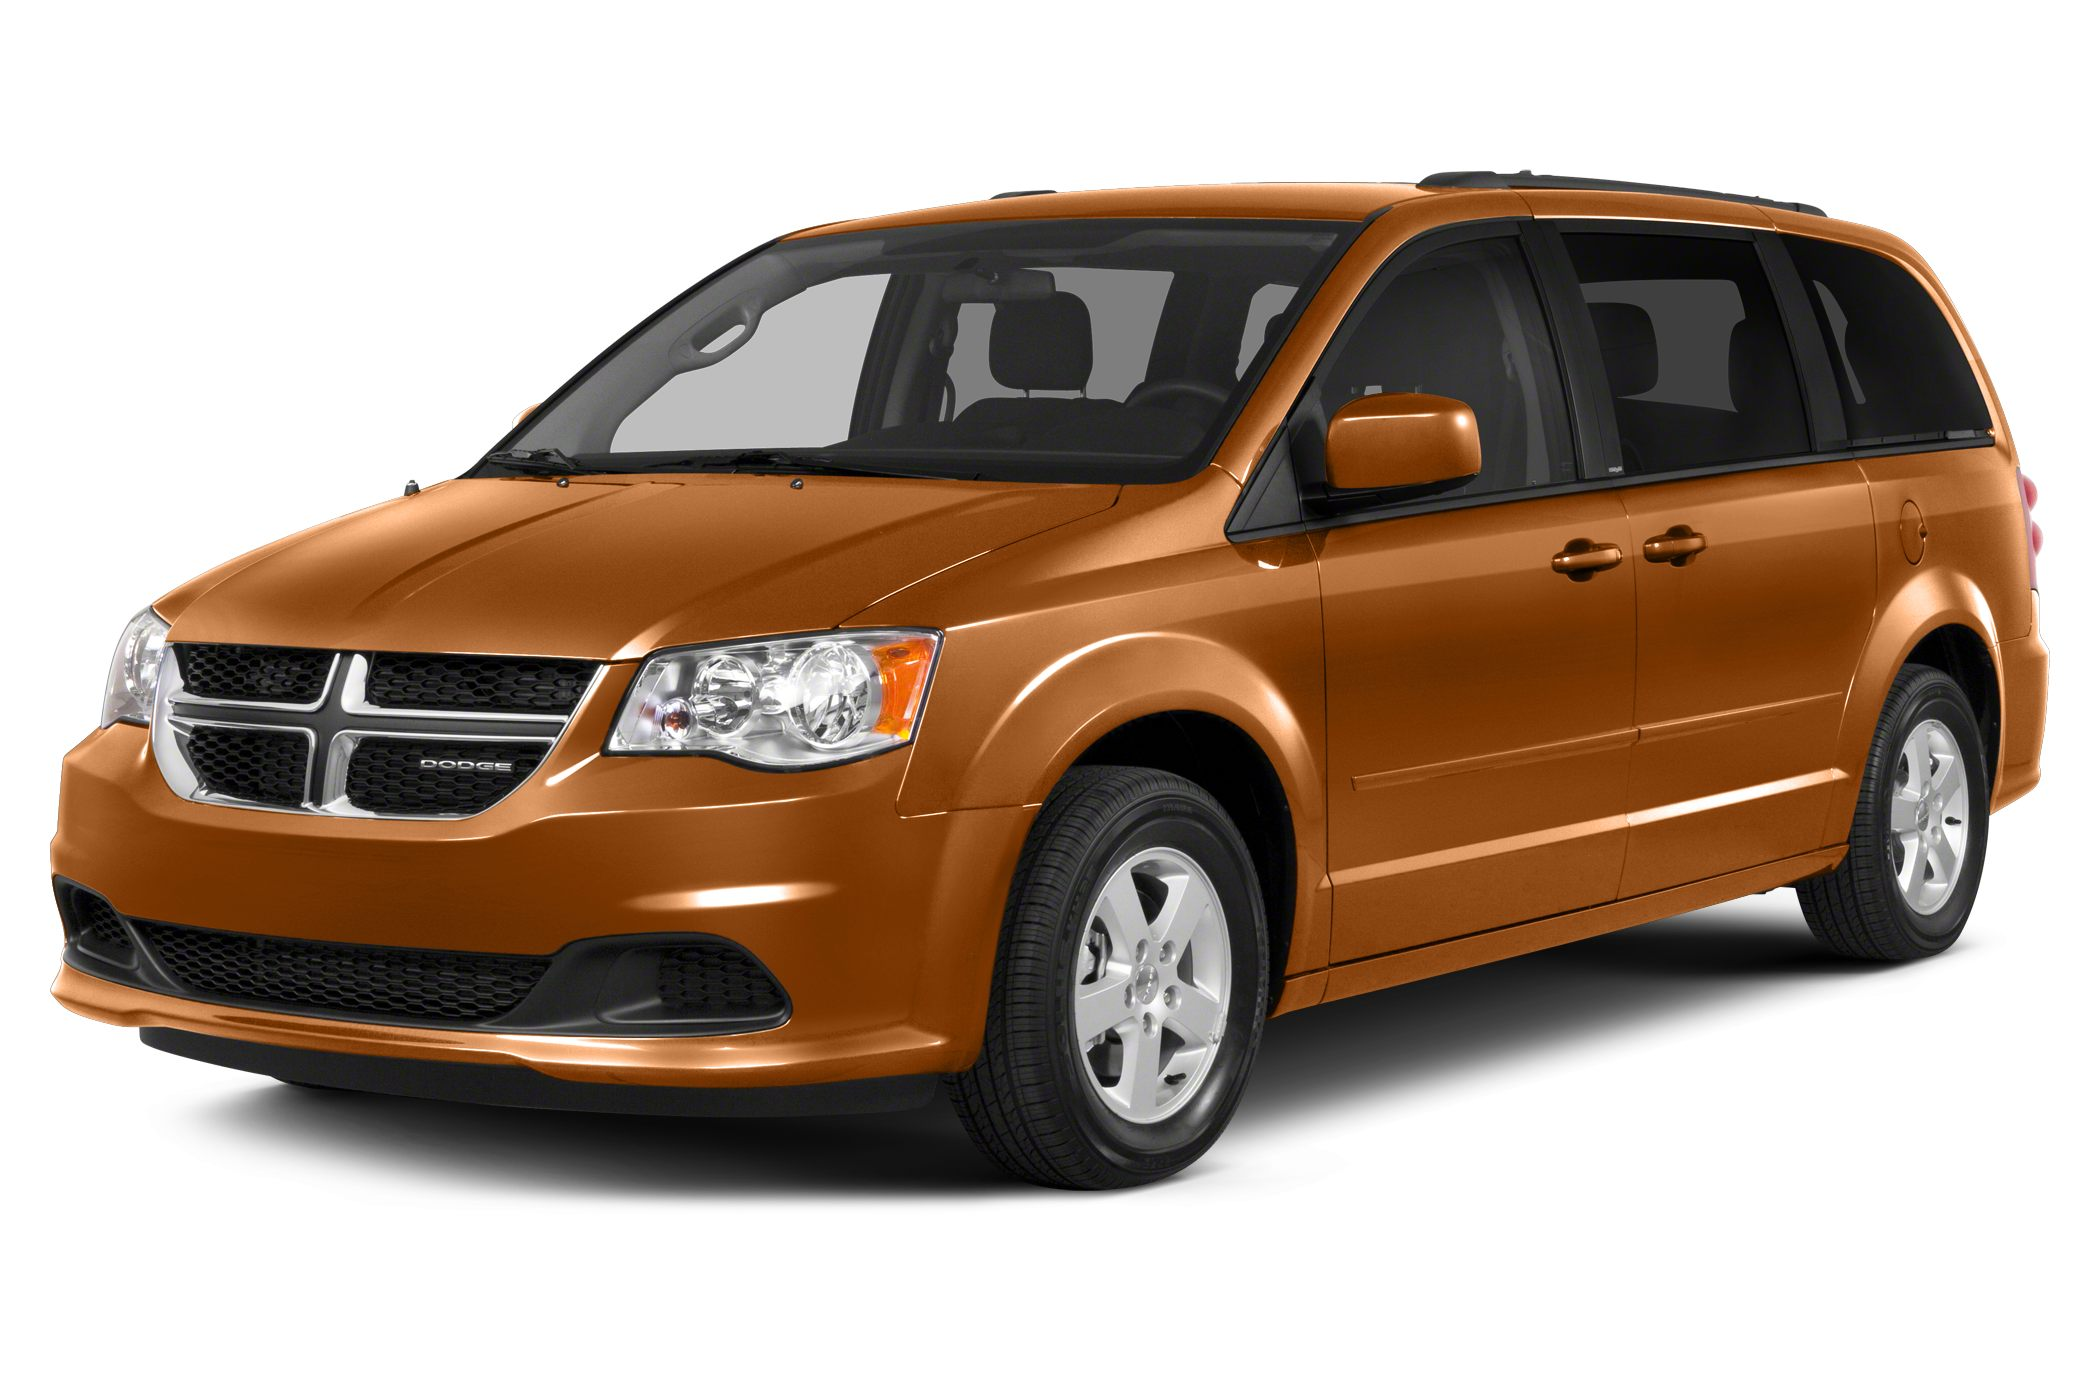 2015 Dodge Grand Caravan AVPSE You Win Yeah baby Buy a new Honda from Diamond Valley Honda in H